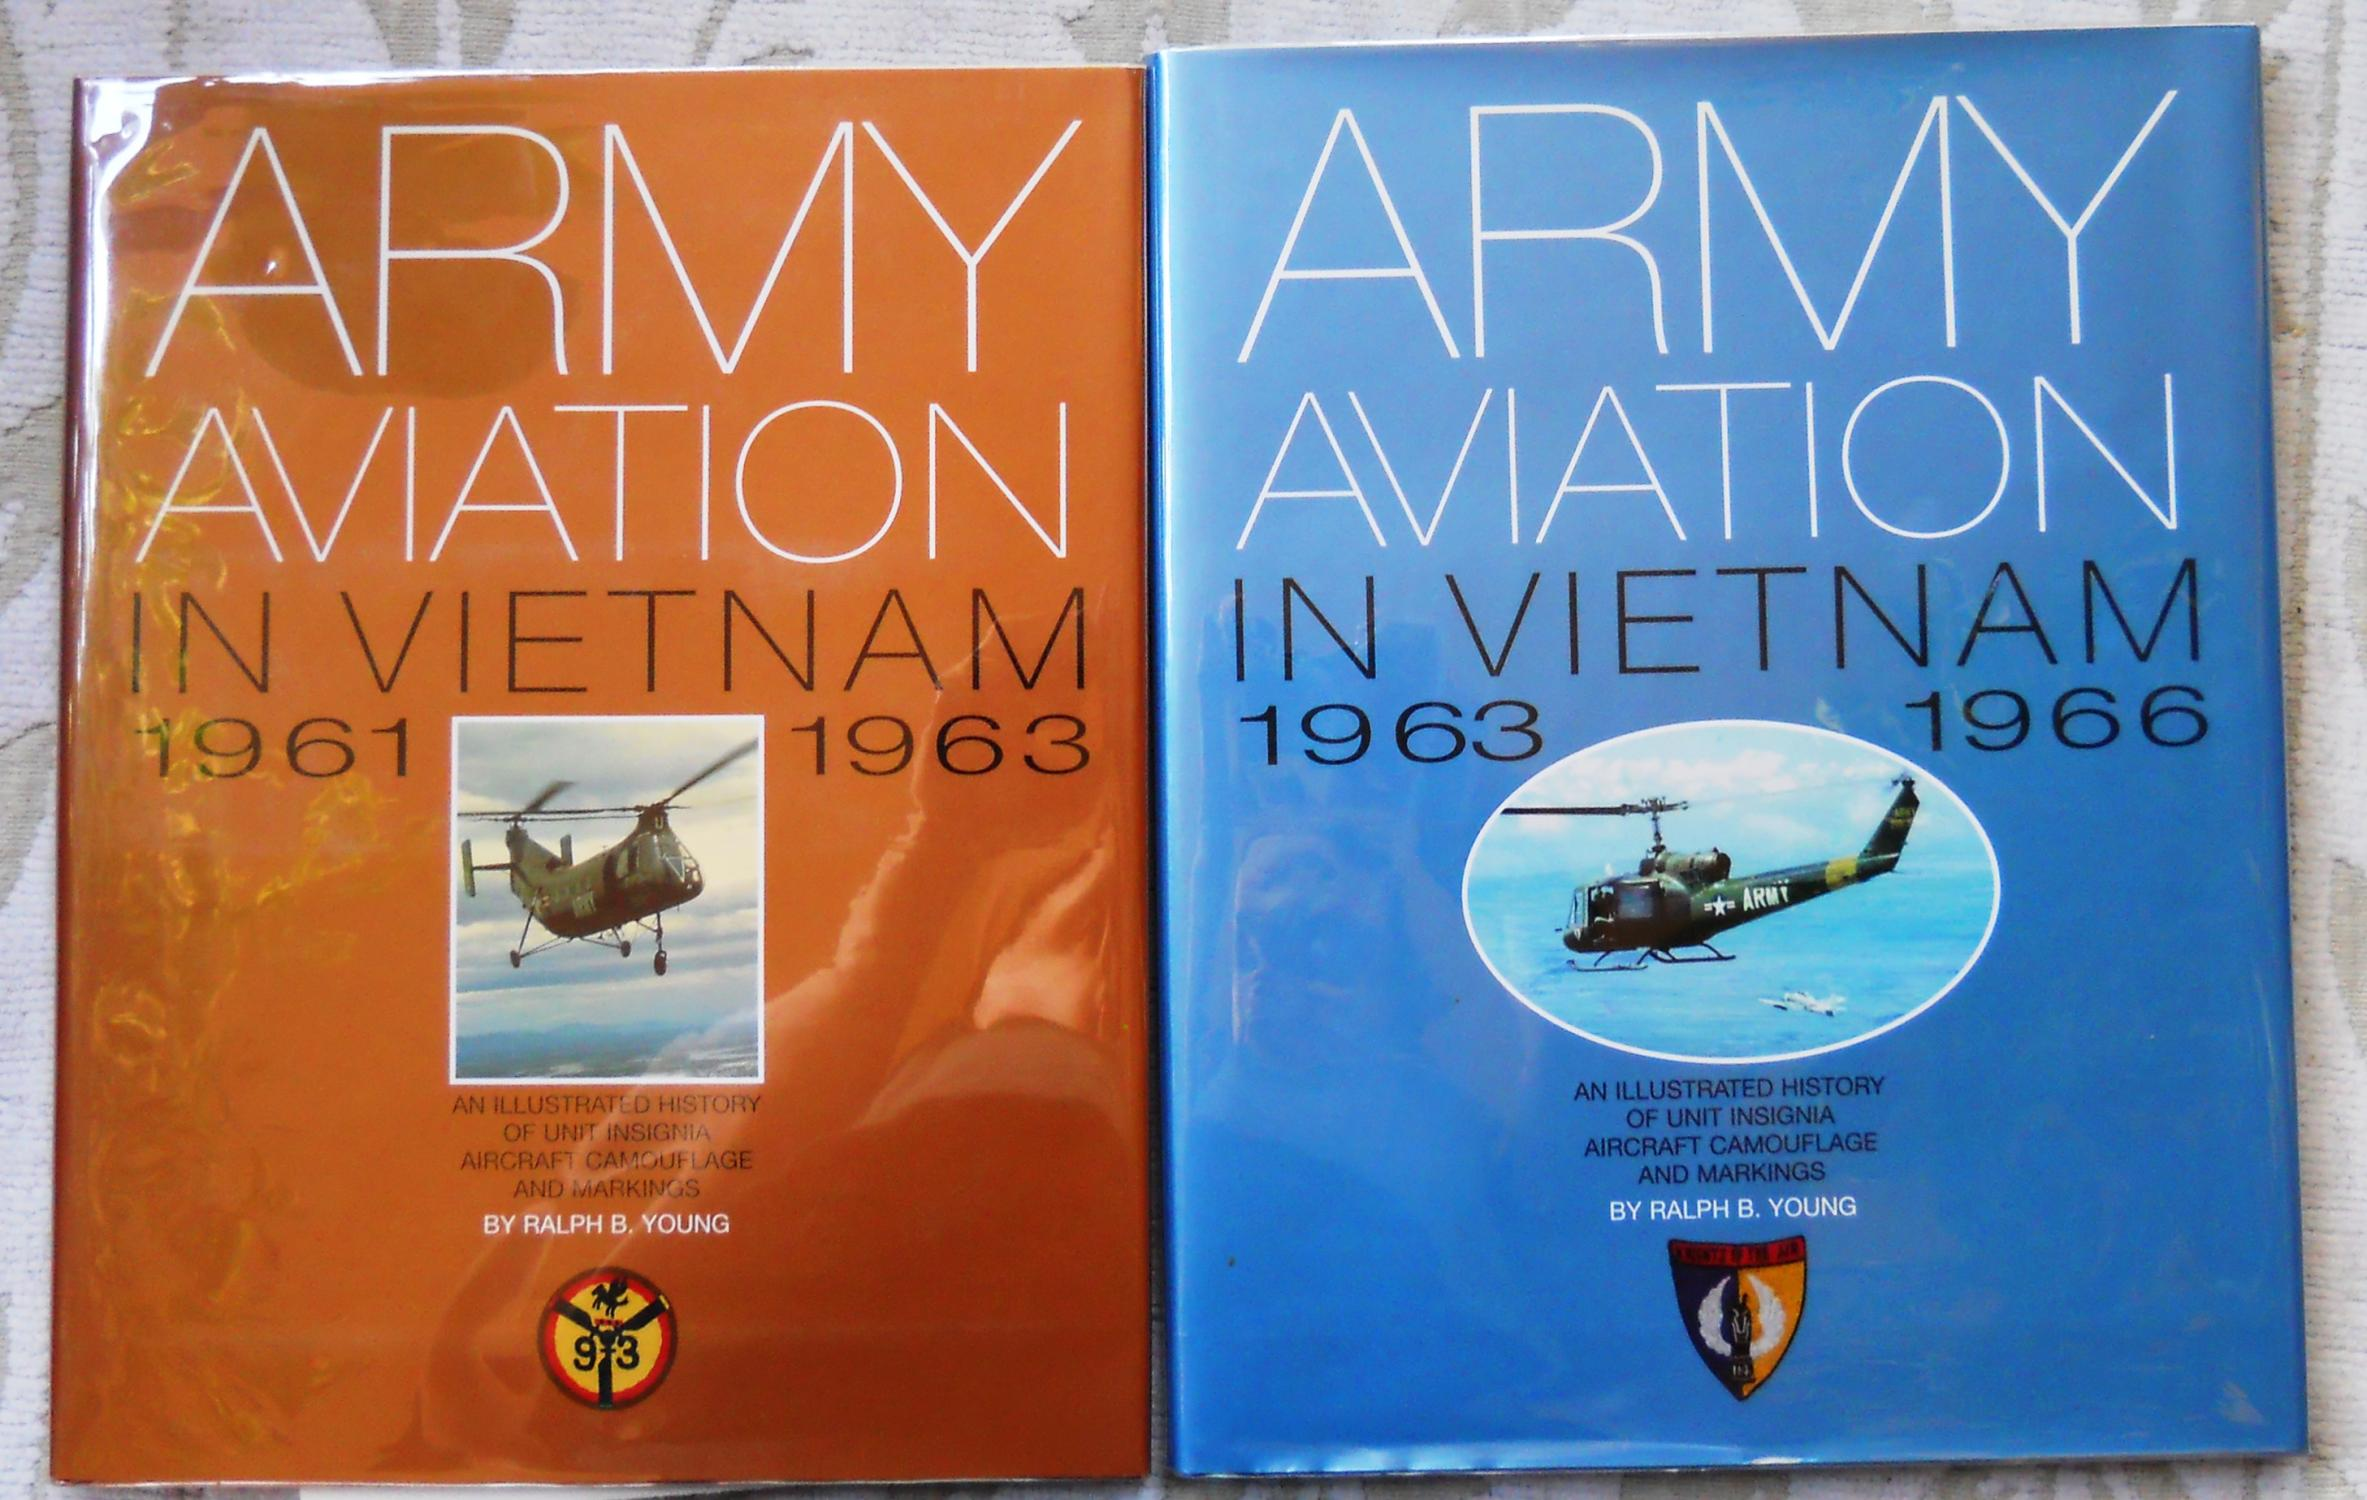 Army Aviation in Vietnam 1961-1963: An